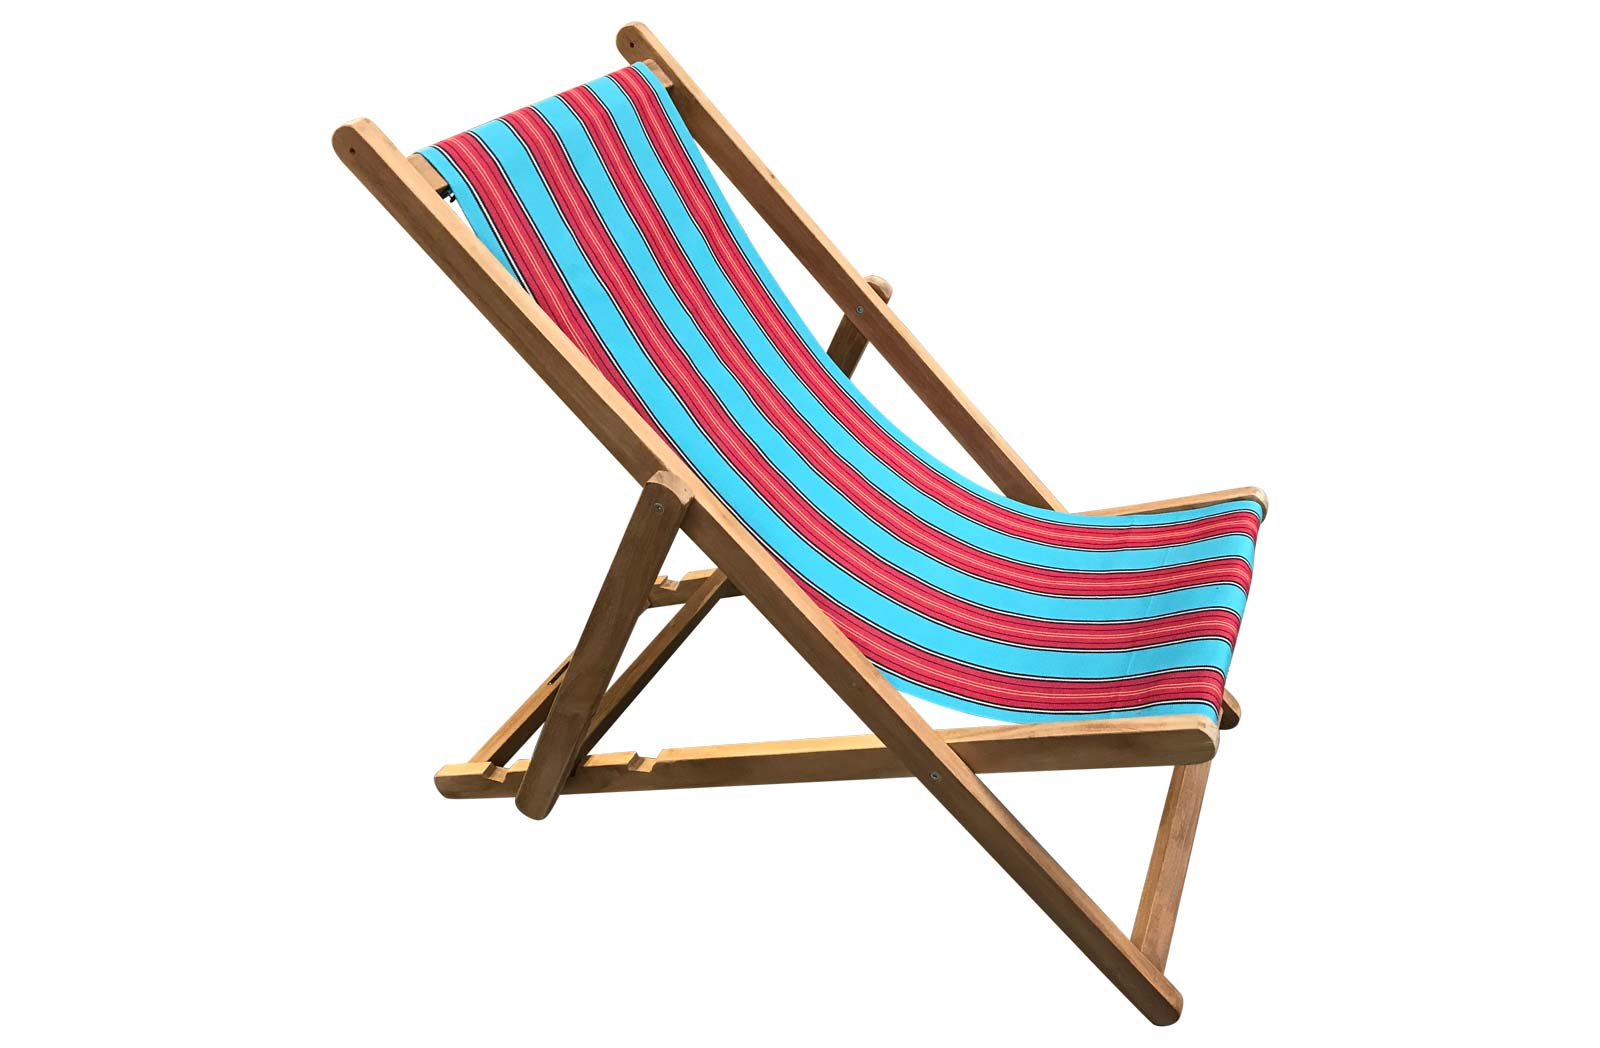 Light Blue and Red Deckchairs